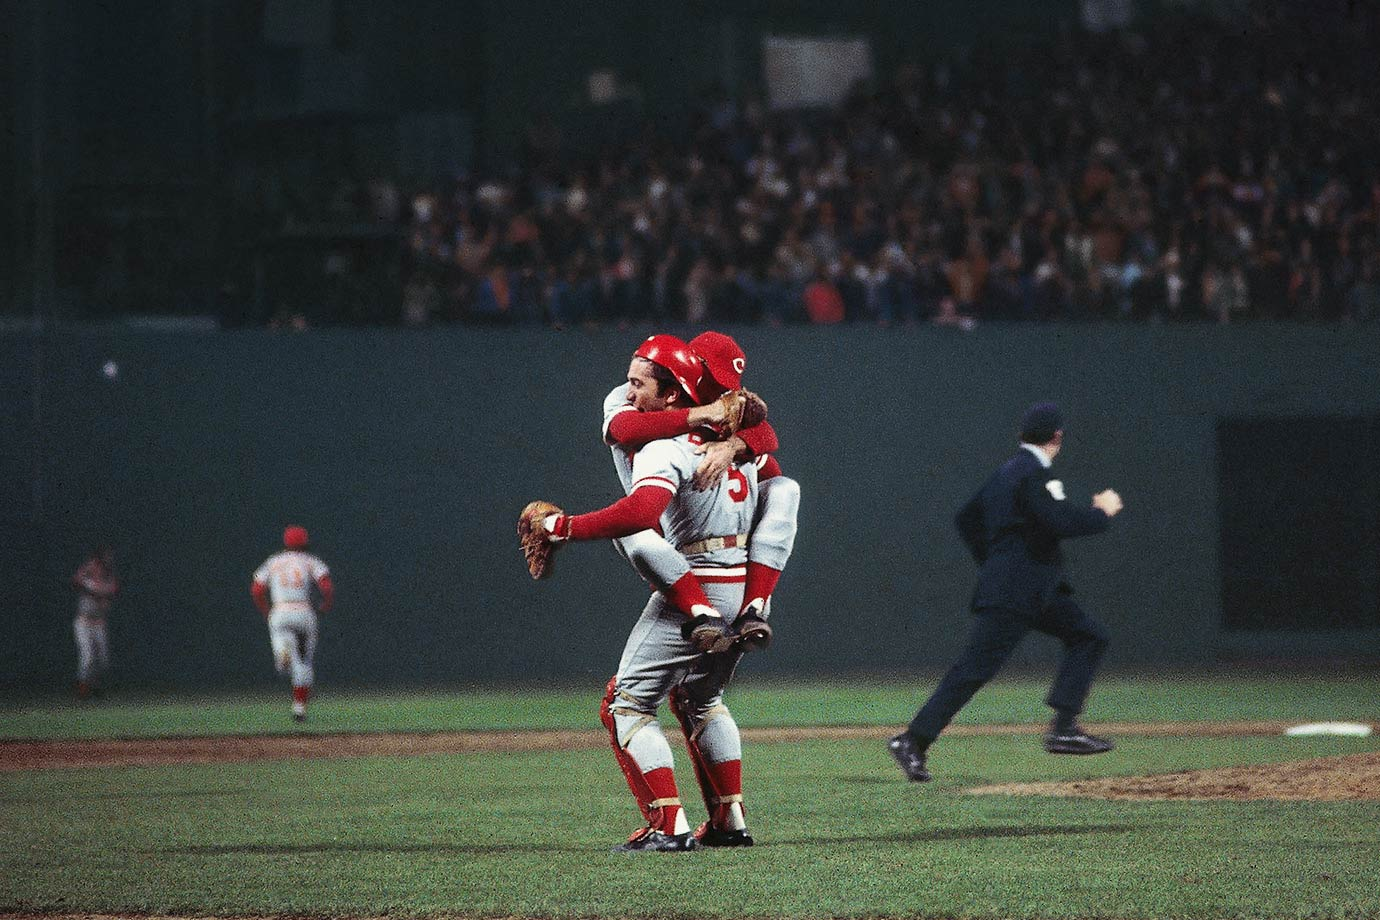 Oct. 22, 1975 — World Series, Game 7